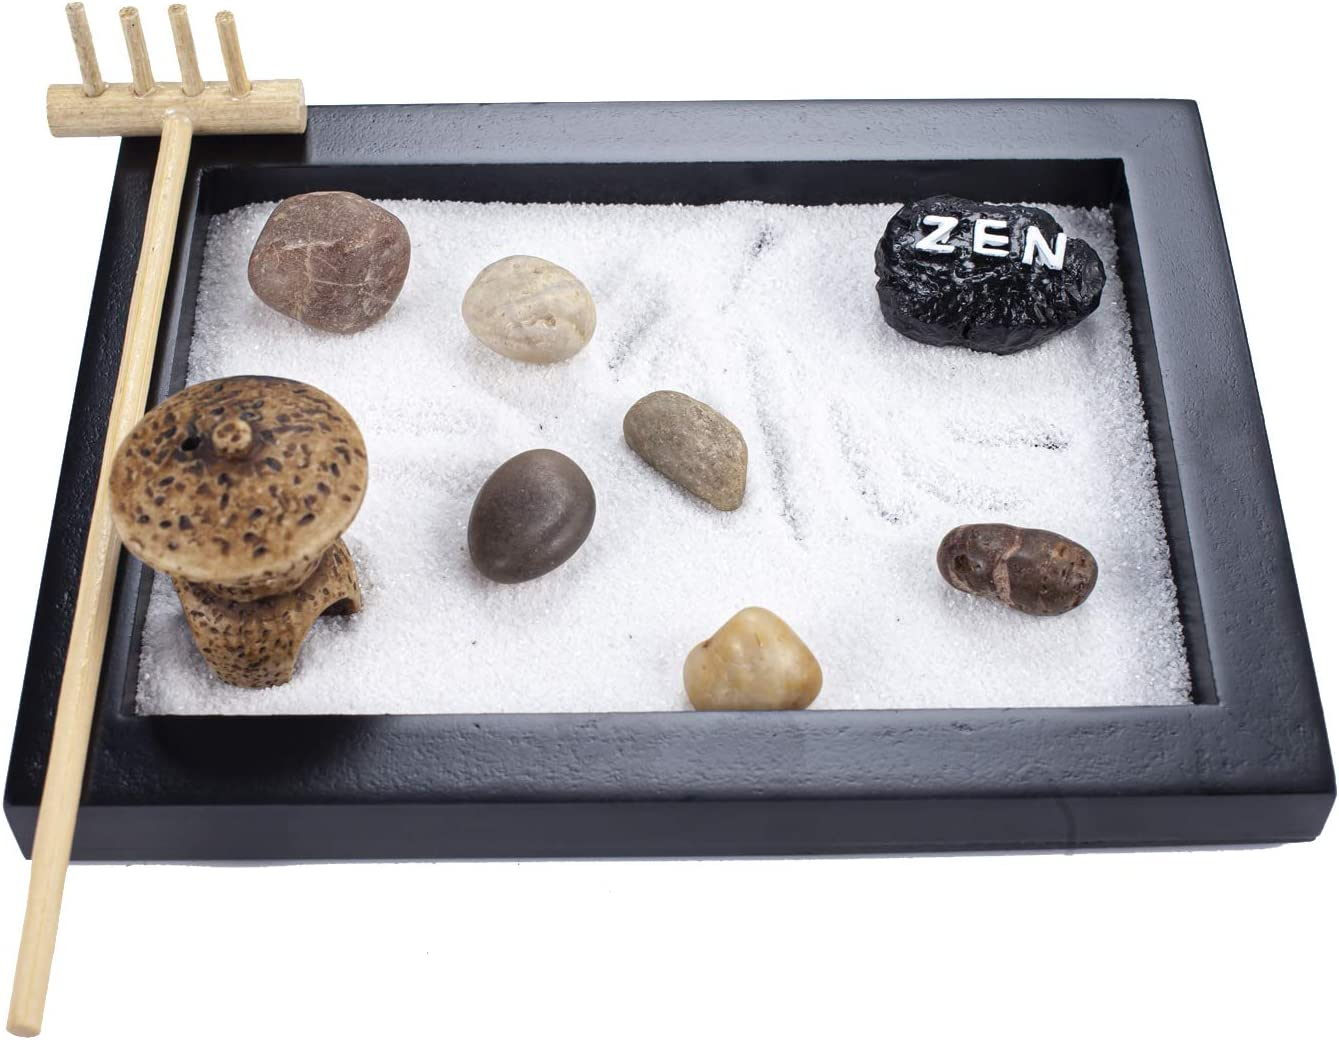 YJ Japanese Zen Sand Garden Mini Meditation Zen Garden Table Décor Kit with Accessories GR029